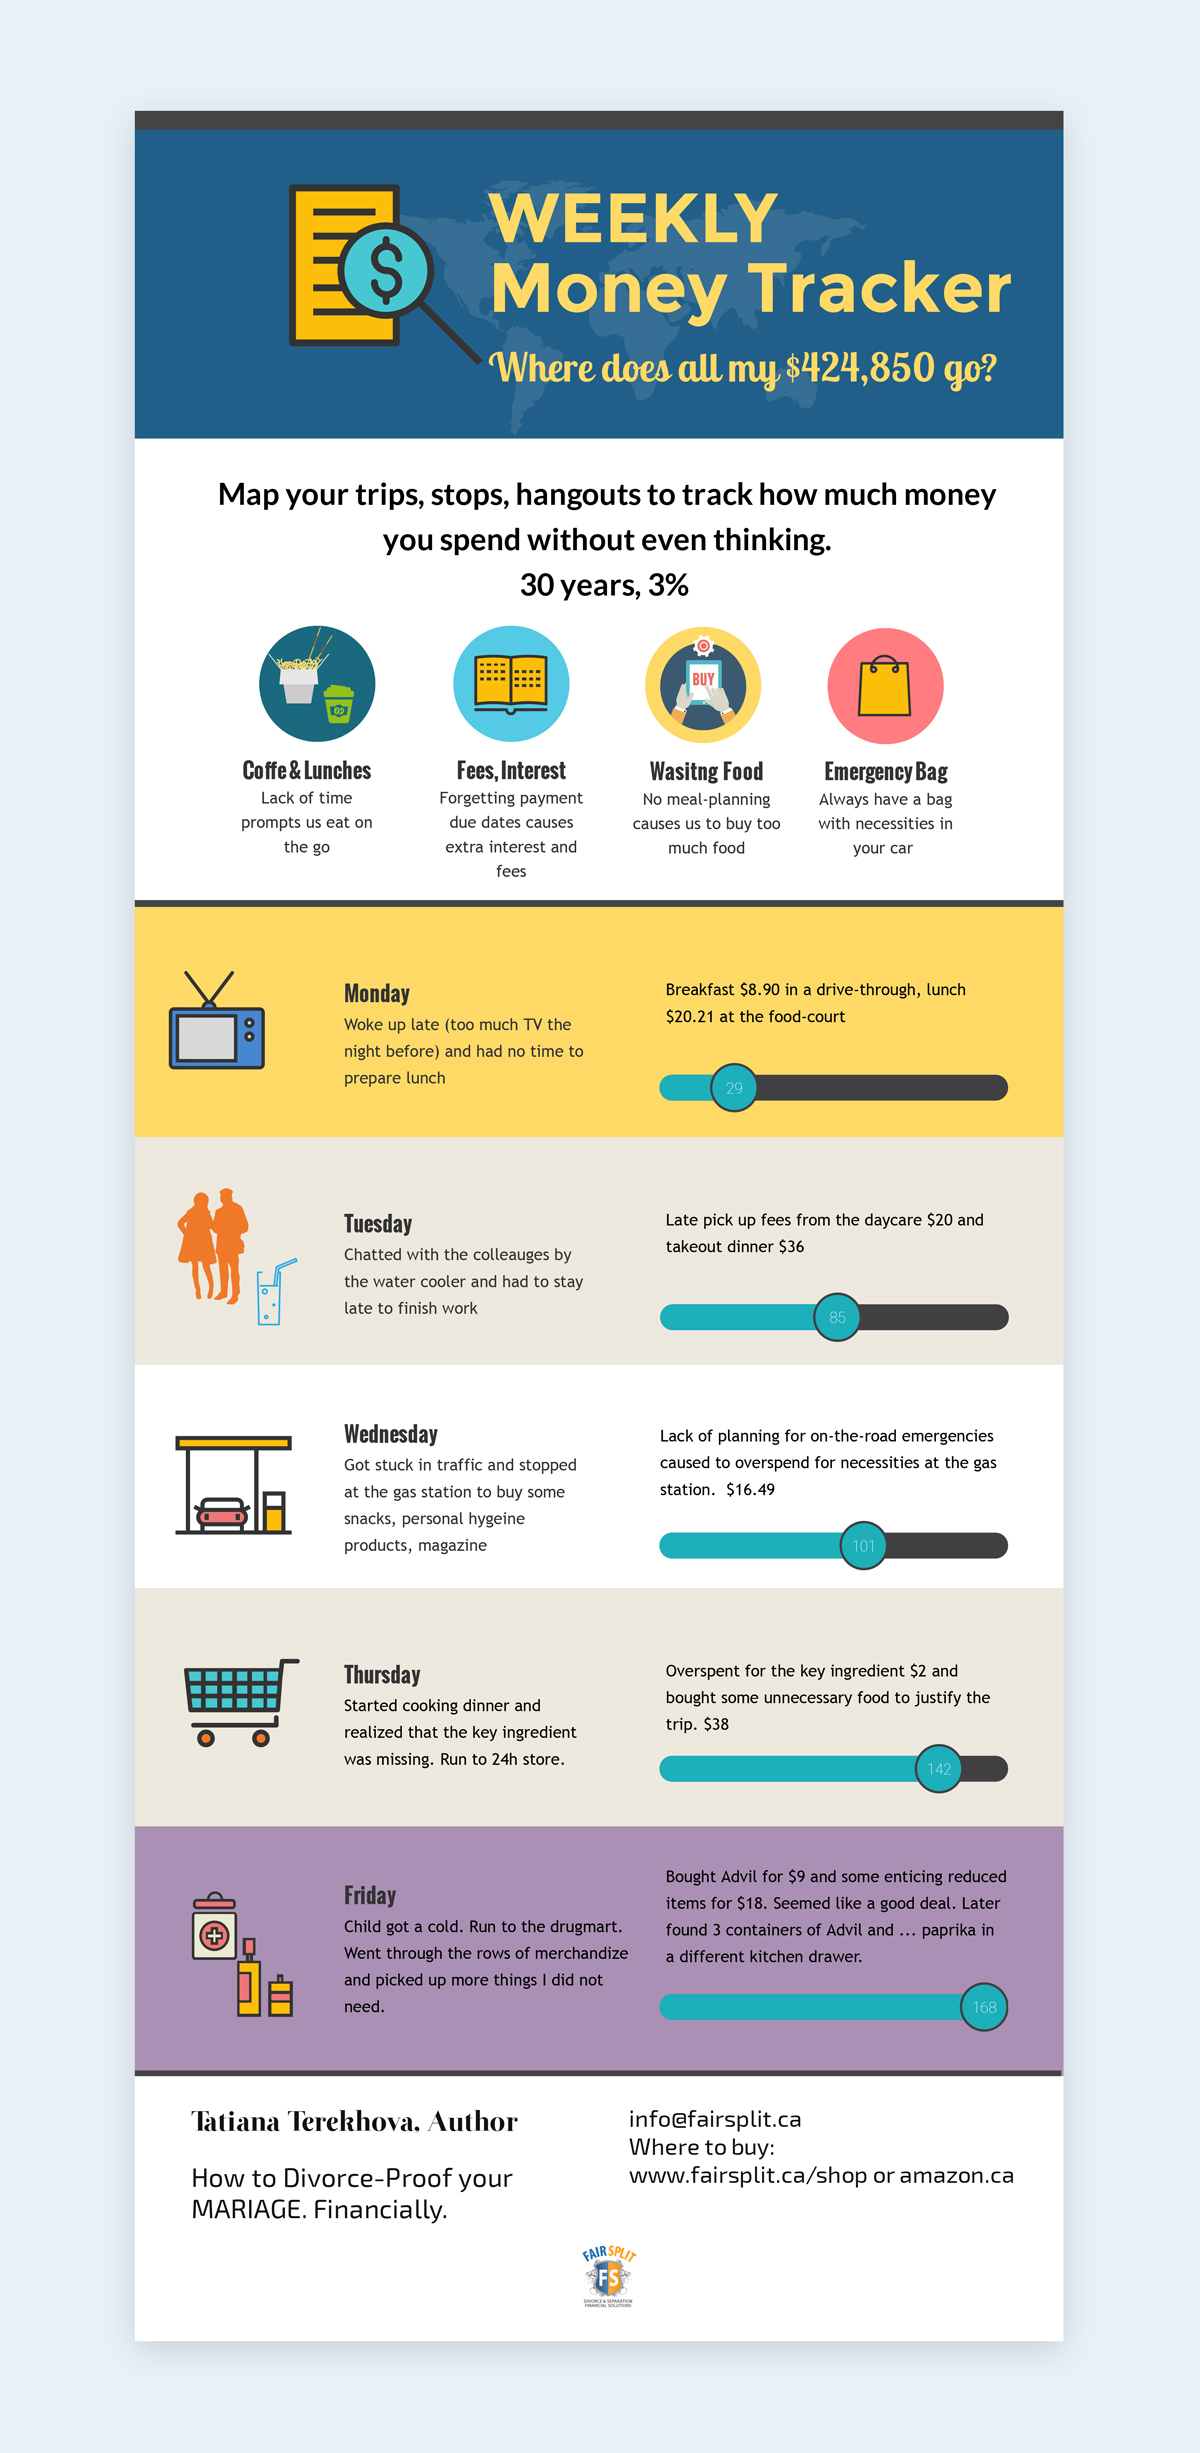 weekly money tracker infographic How a Divorce Financial Analyst Is Using Infographics to Reach a Wider Audience